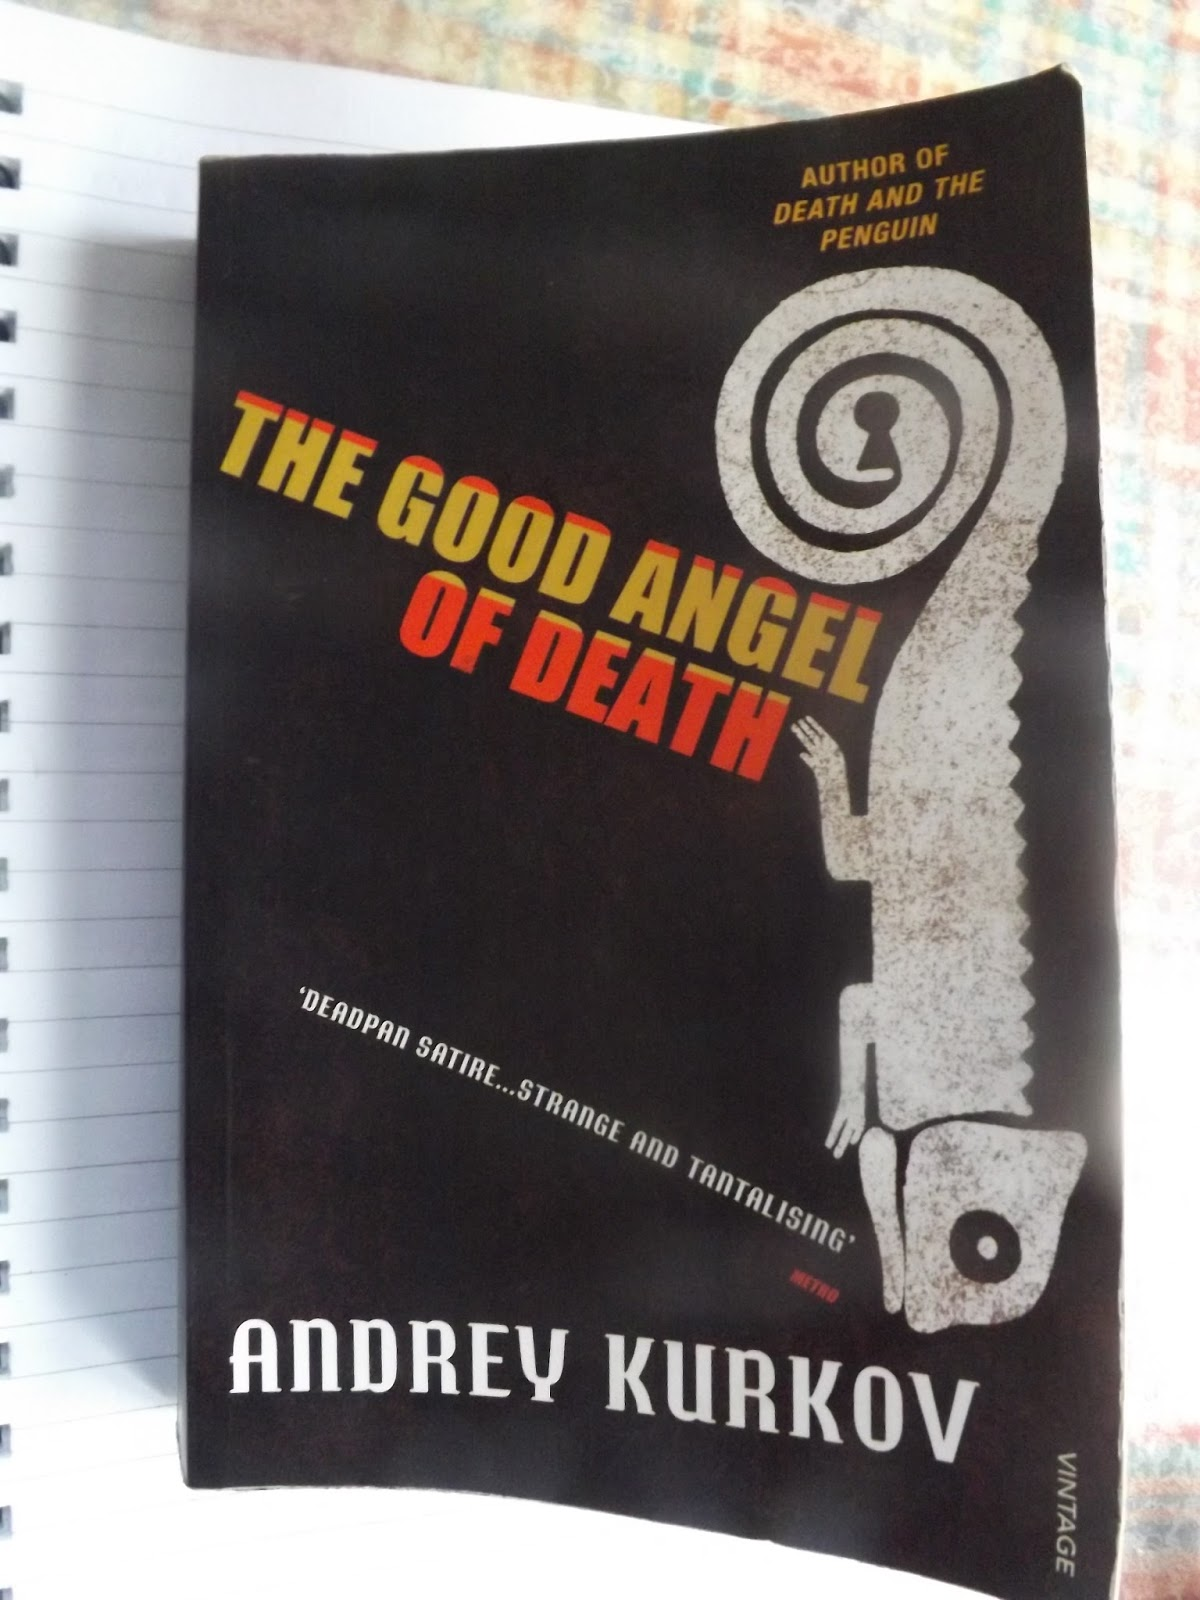 My review of 'The Good Angel of Death' by Andrey Kurkov